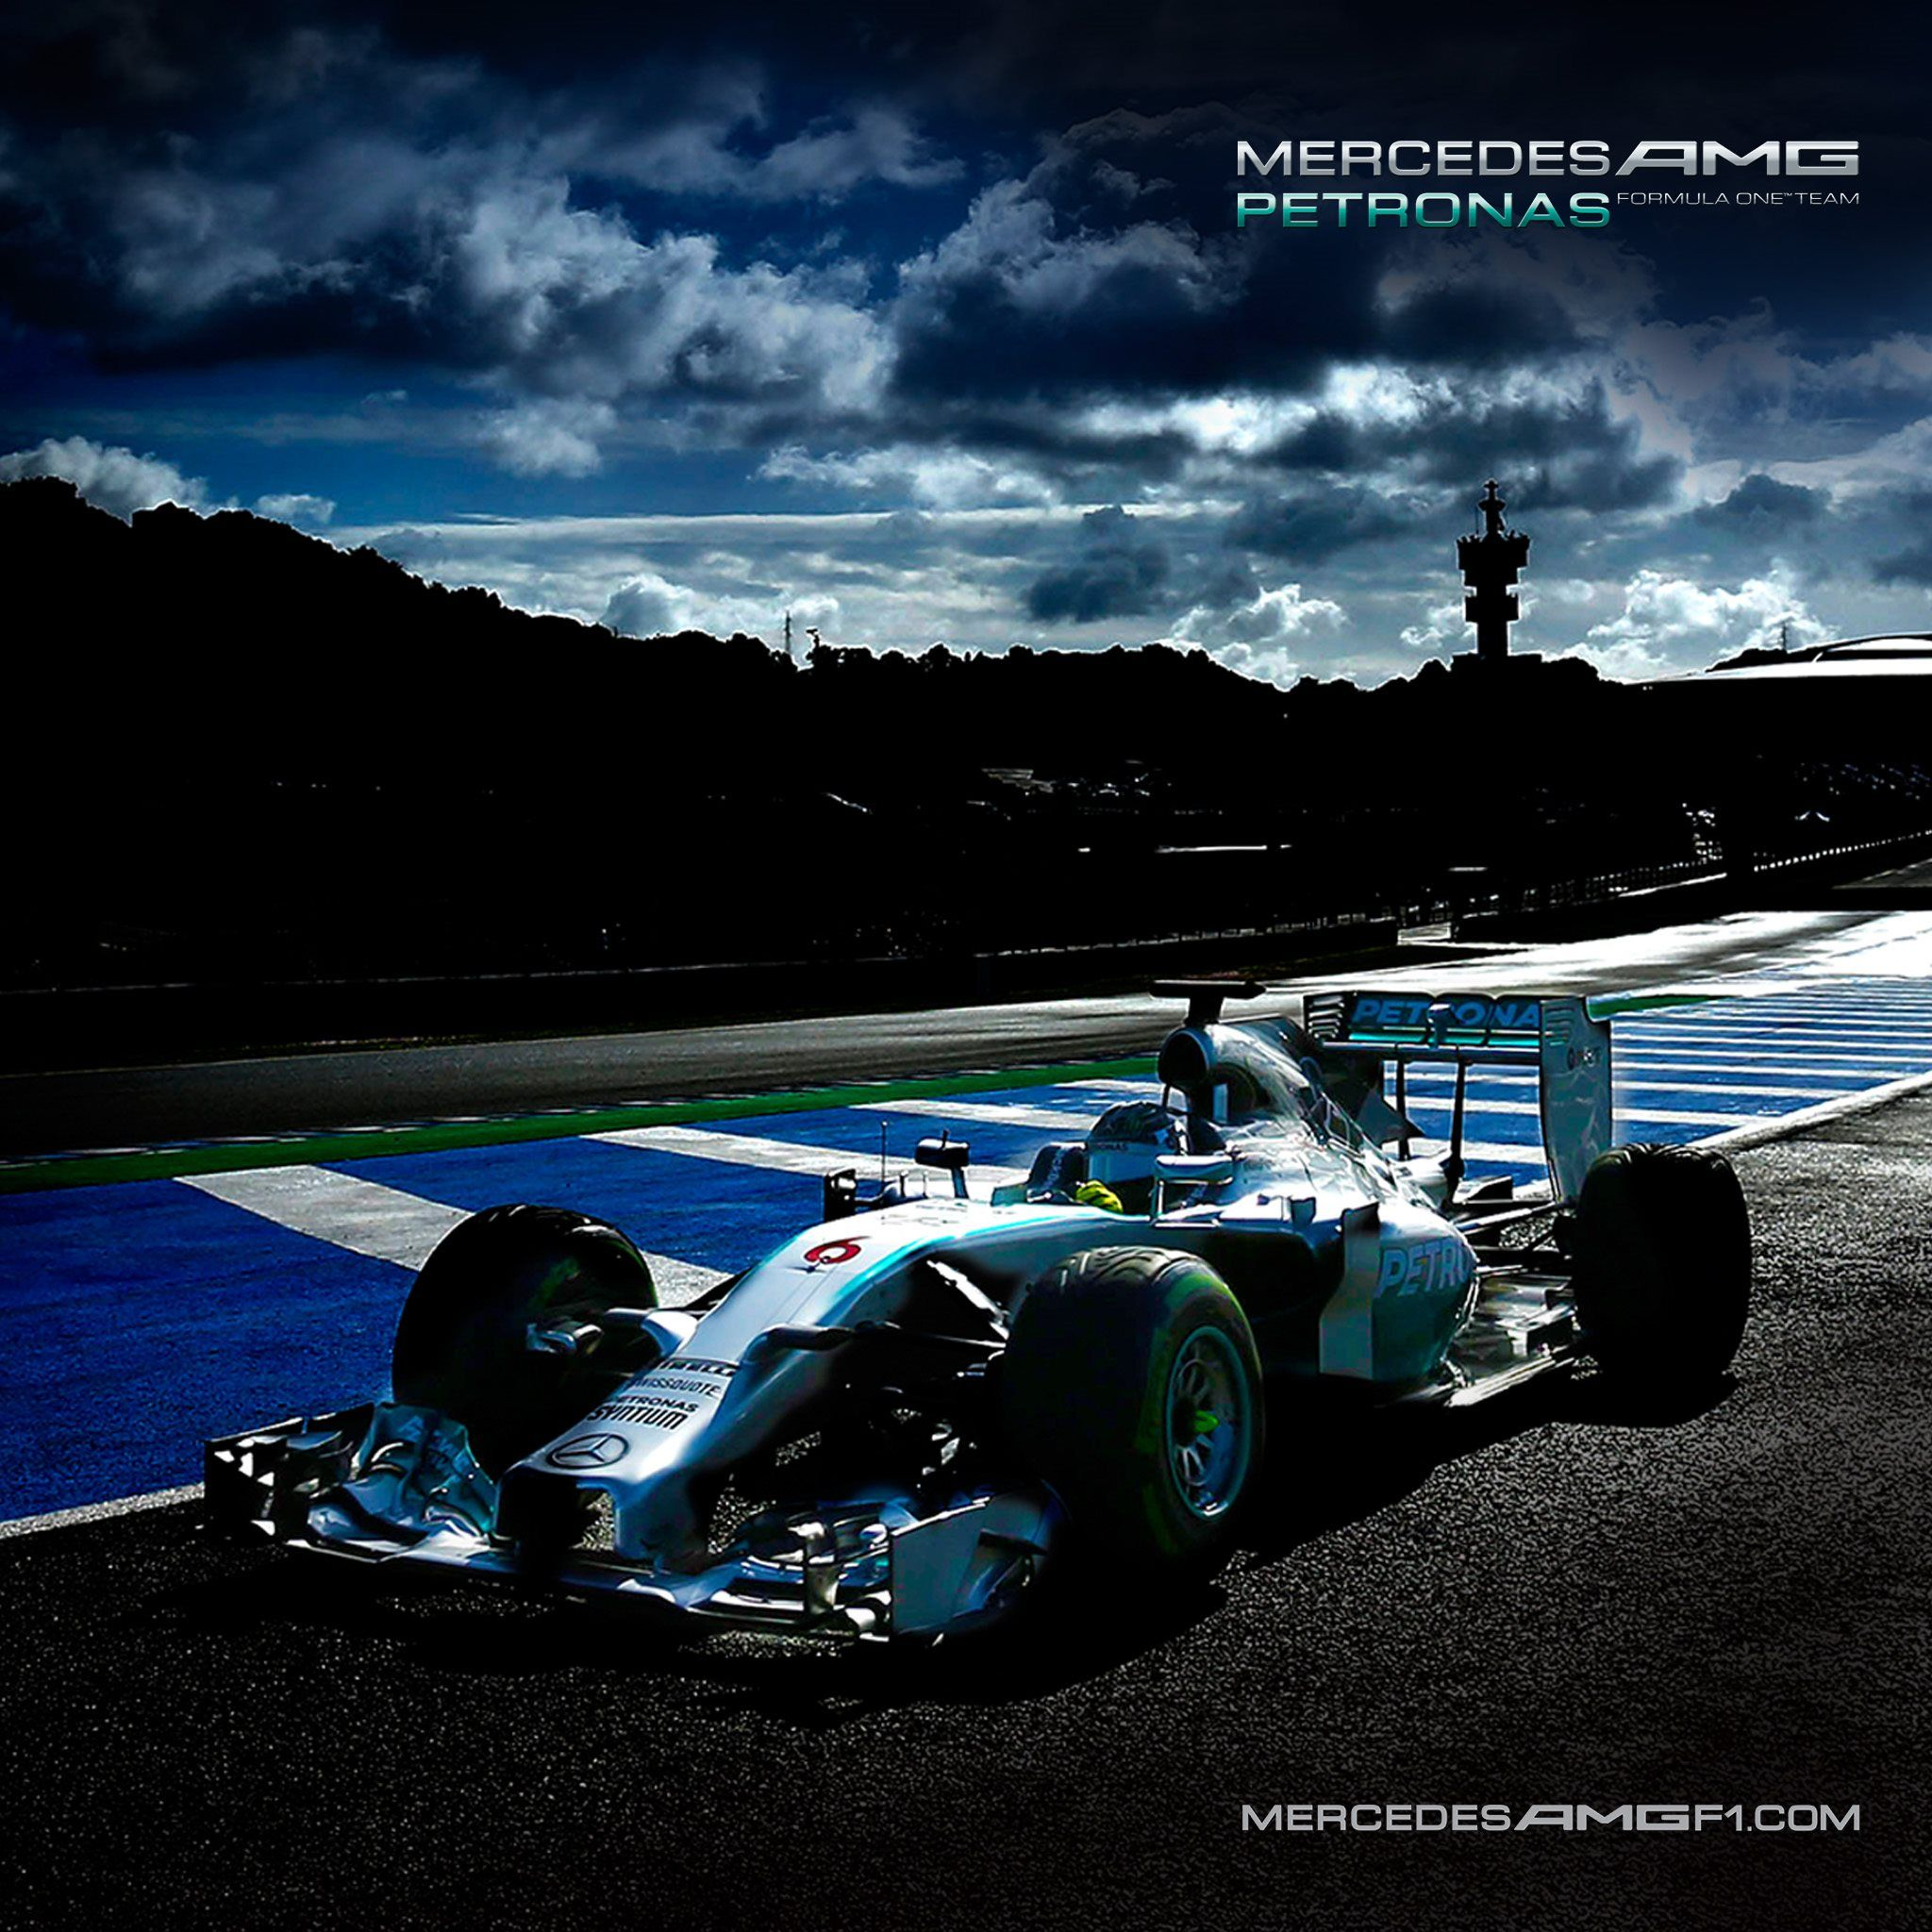 Mercedes Benz Car Wallpaper: Mercedes AMG Petronas F1 HD Wallpapers. 4K Wallpapers